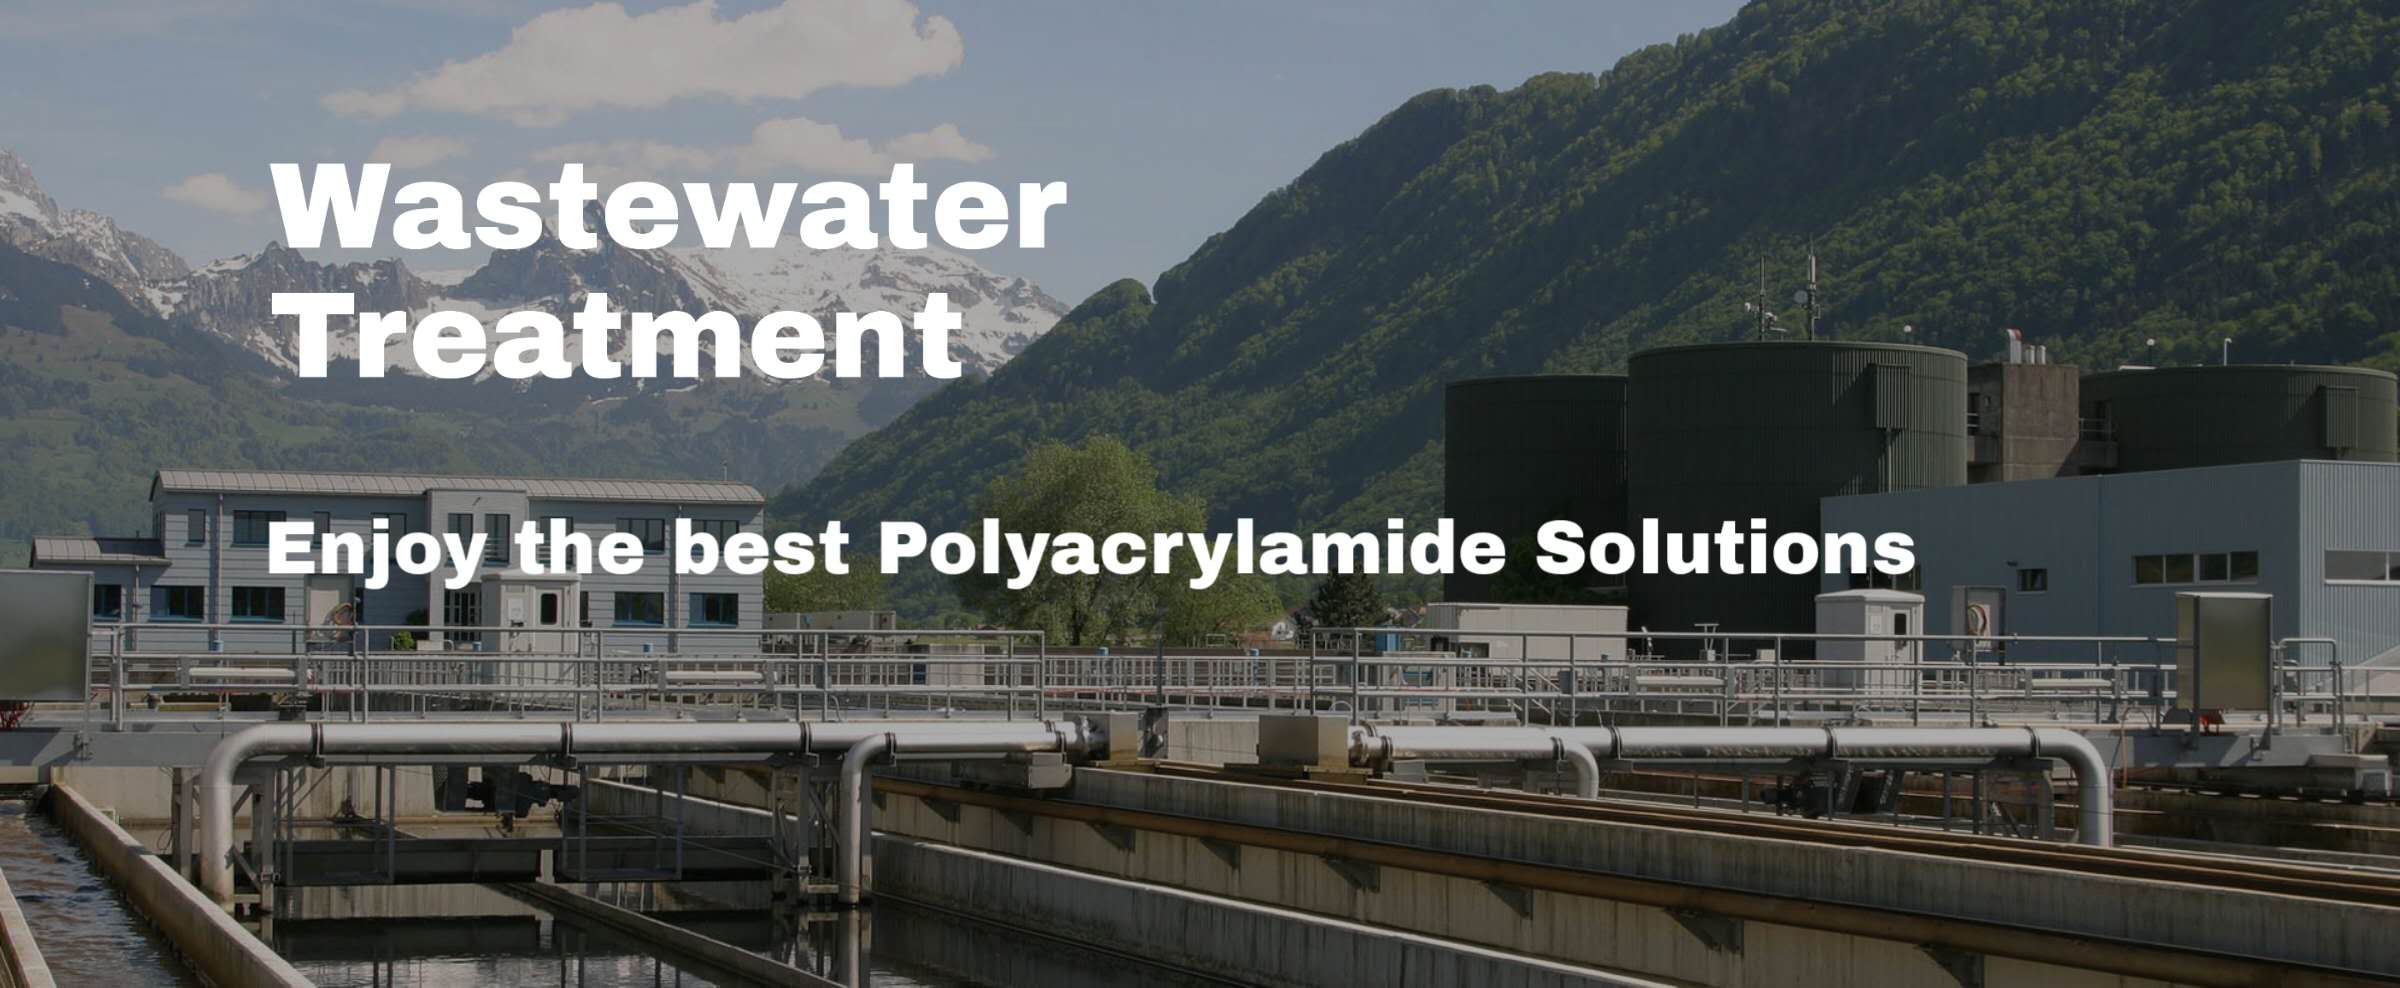 Wastewater Treatment Polyacrylamide Flocculant